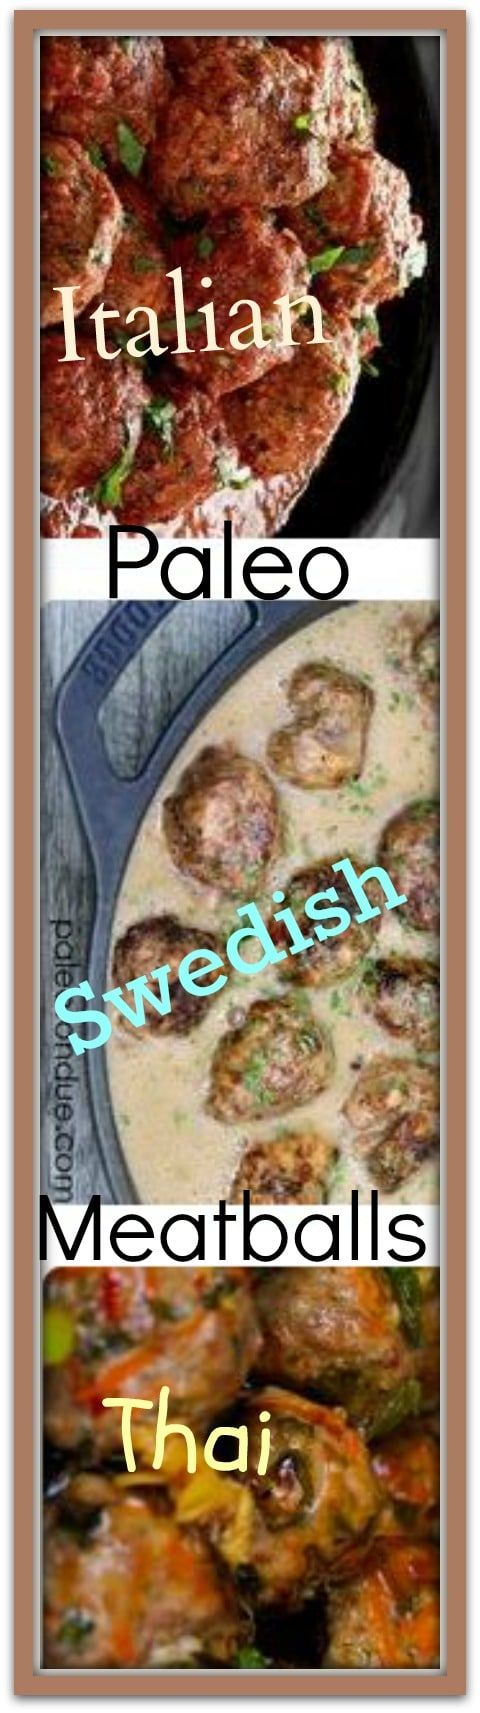 paleo meatballs  Healthy gluten-free, dairy-free Paleo Italian meatballs, Swedish meatballs & Thai meatballs. Please Repin #carbswitch